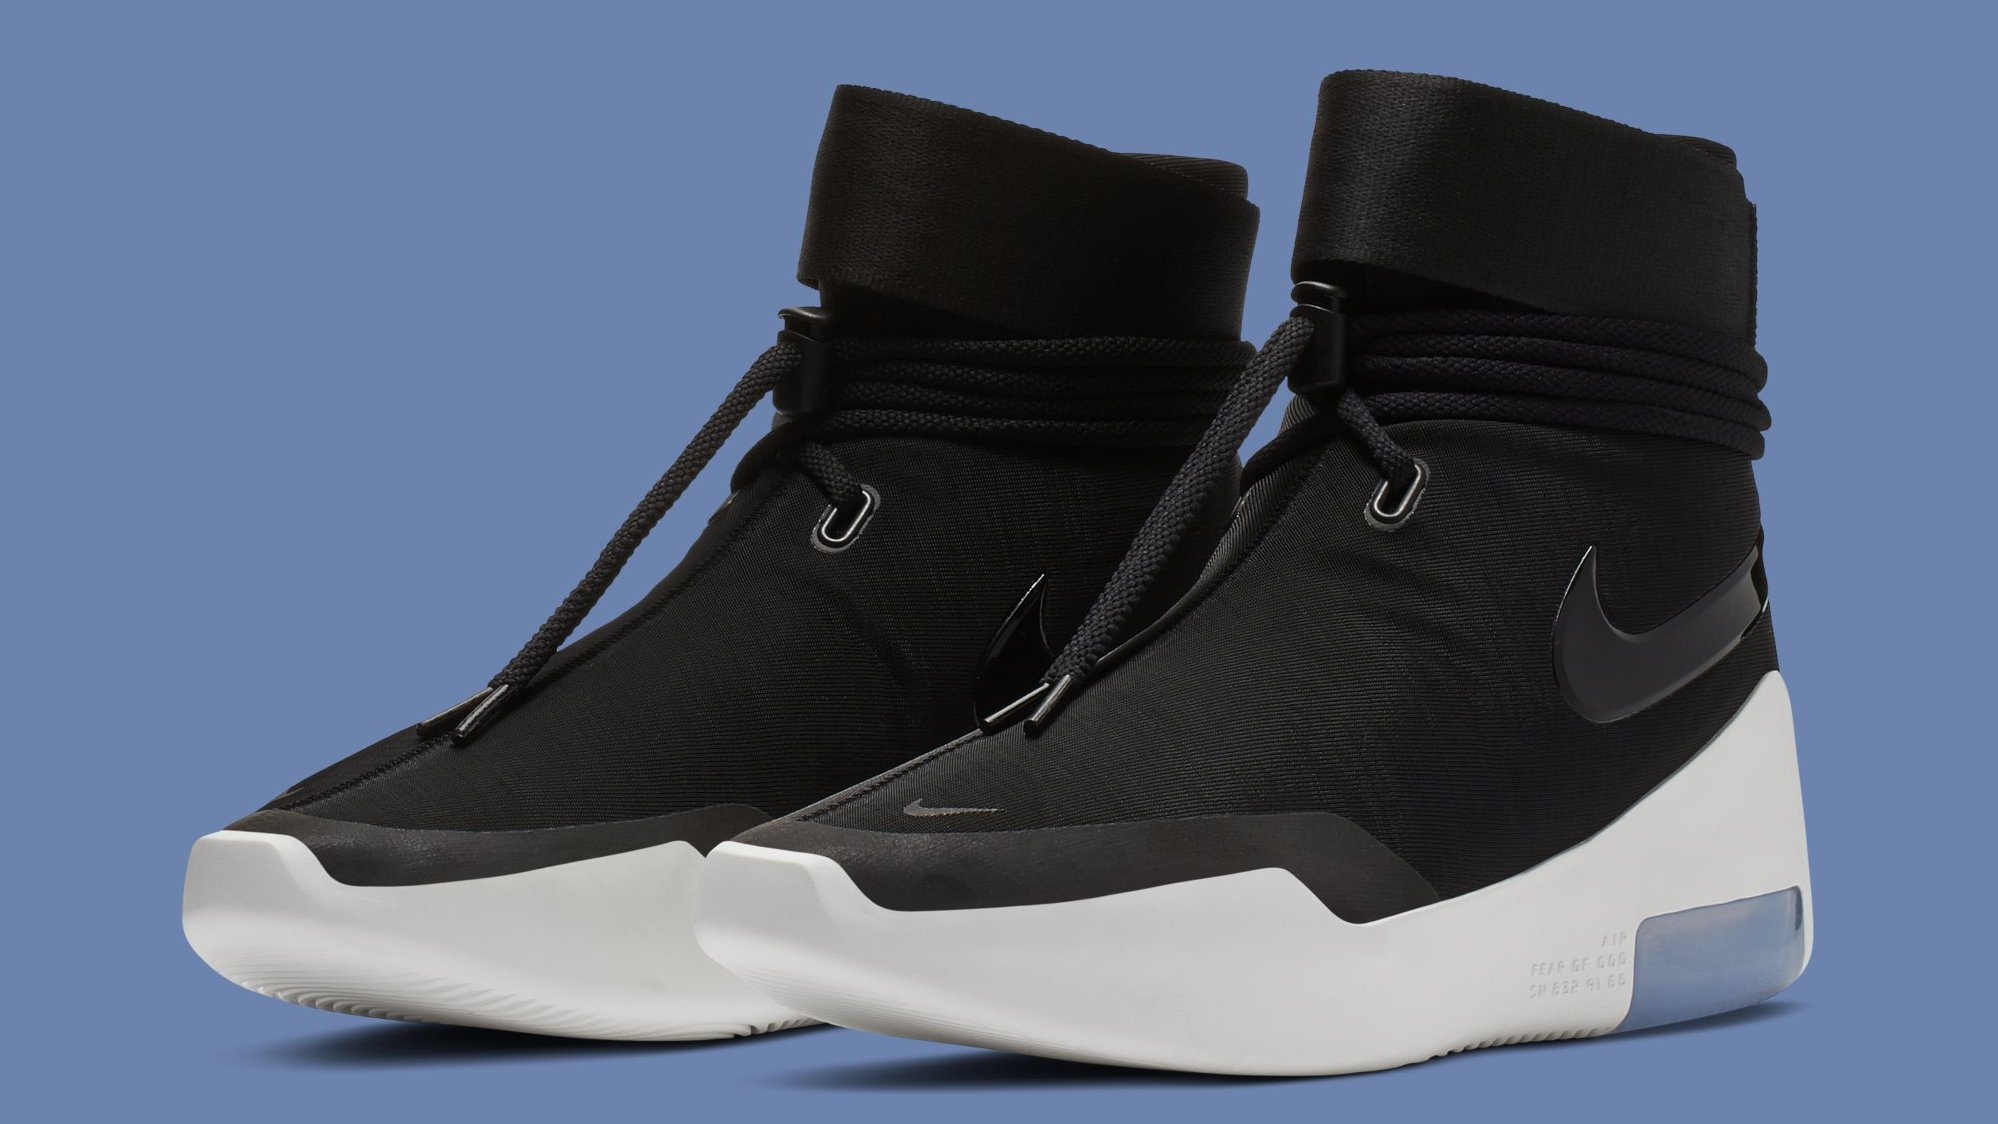 Best Look Yet at the Nike Air Fear of God SA